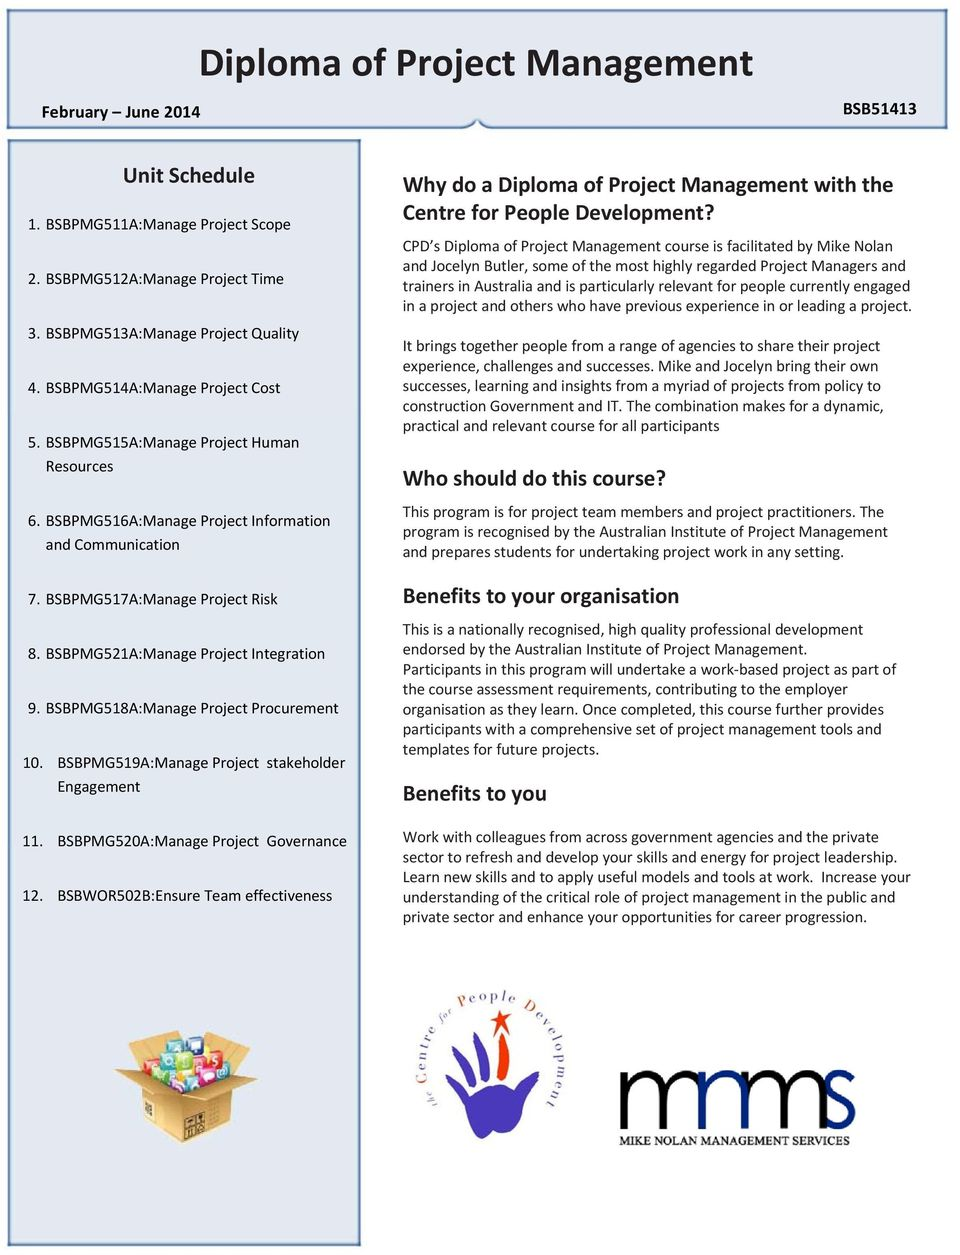 BSBPMG518A:Manage Project Procurement 10. BSBPMG519A:Manage Project stakeholder Engagement 11. BSBPMG520A:Manage Project Governance 12.